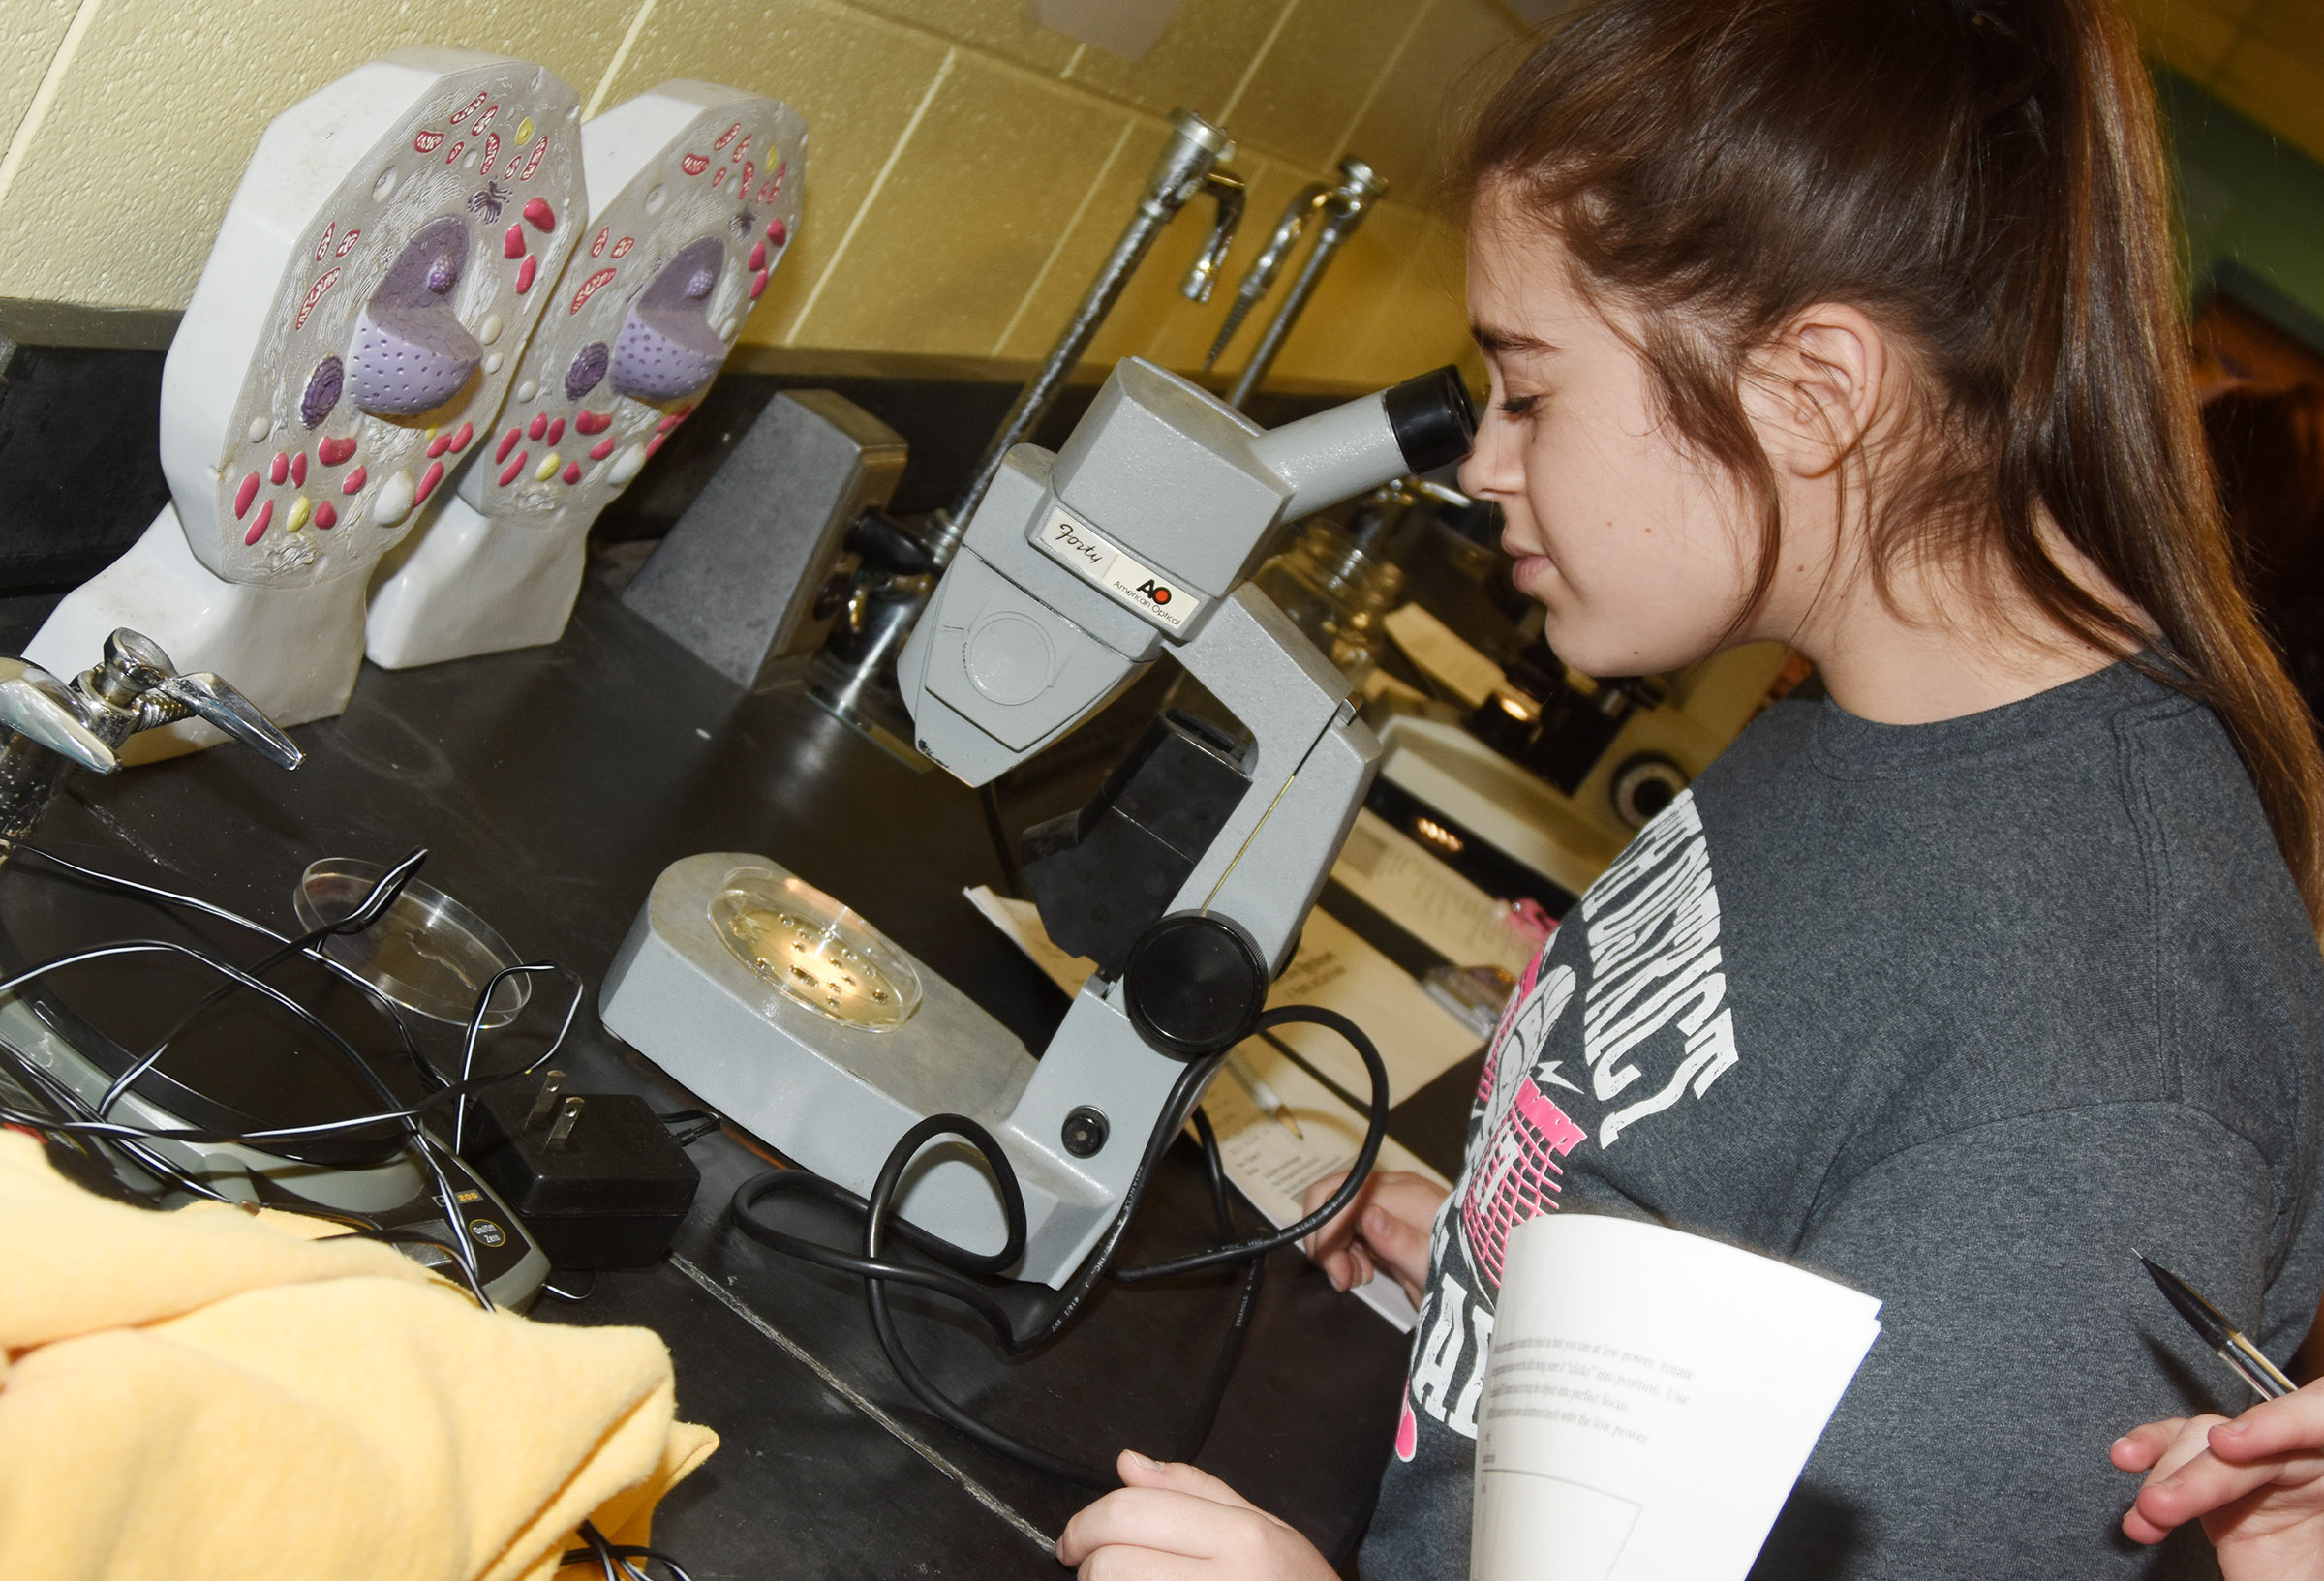 CHS freshman Chloe Garrett looks at pond water under the microscope.